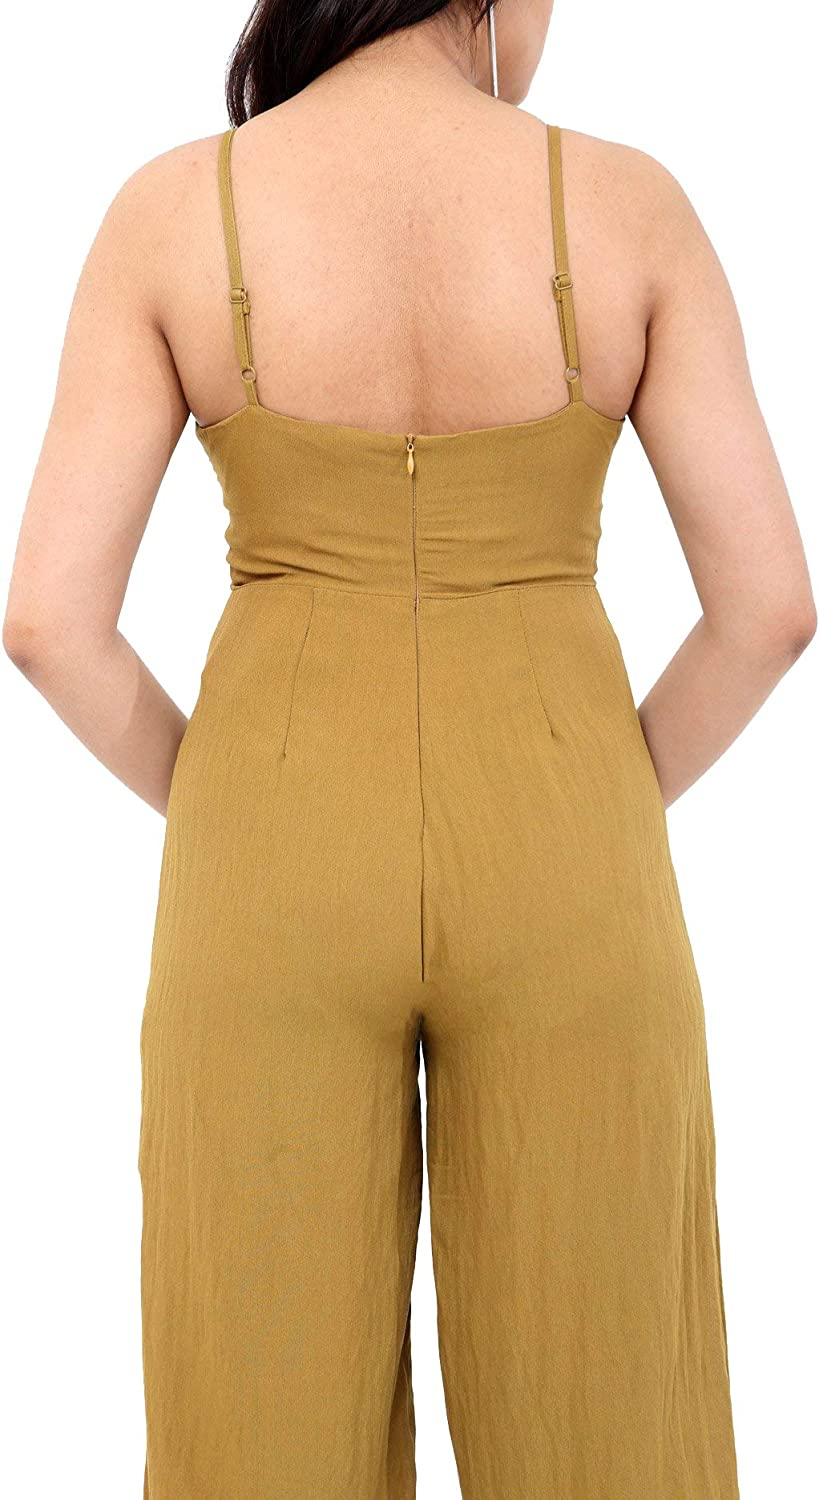 Verso Fashion Womens Retro Dungaree Sleeveless Strappy Jumpssuit Wide Leg Long Playsuit